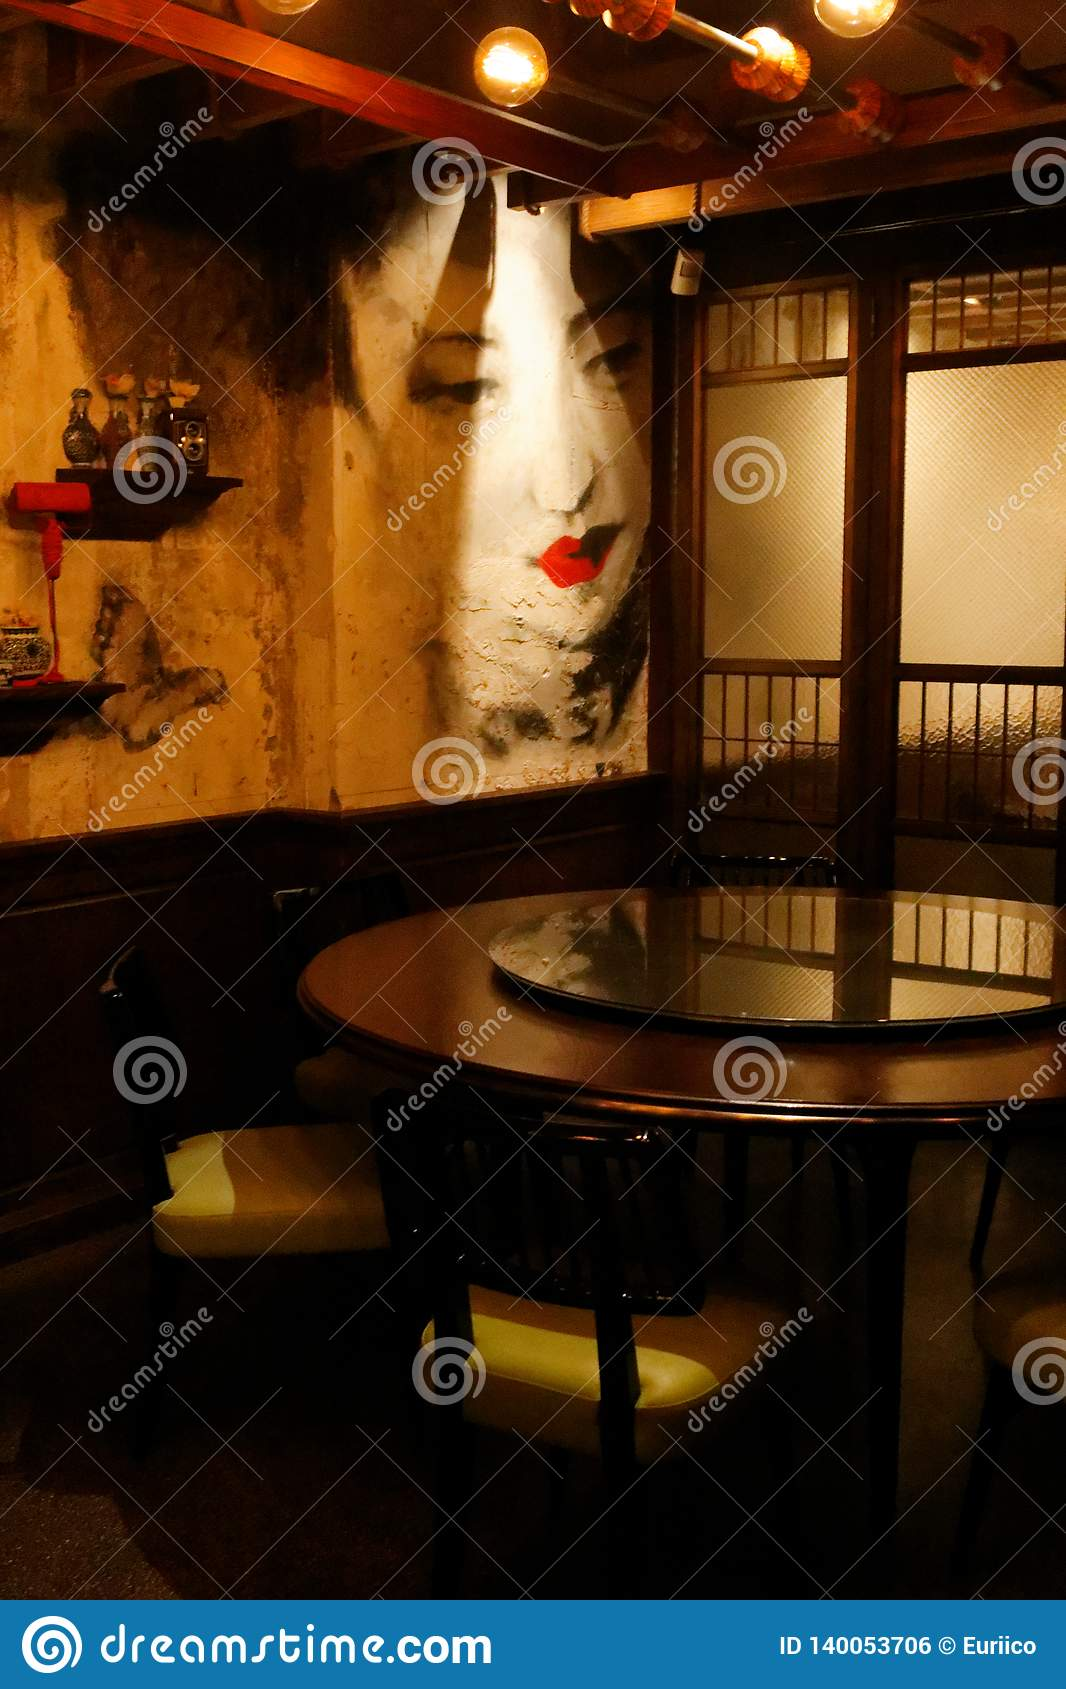 Interiors Of Mott 32 Restaurant Hongkong Background Editorial Photo Image Of Cooked Fresh 140053706